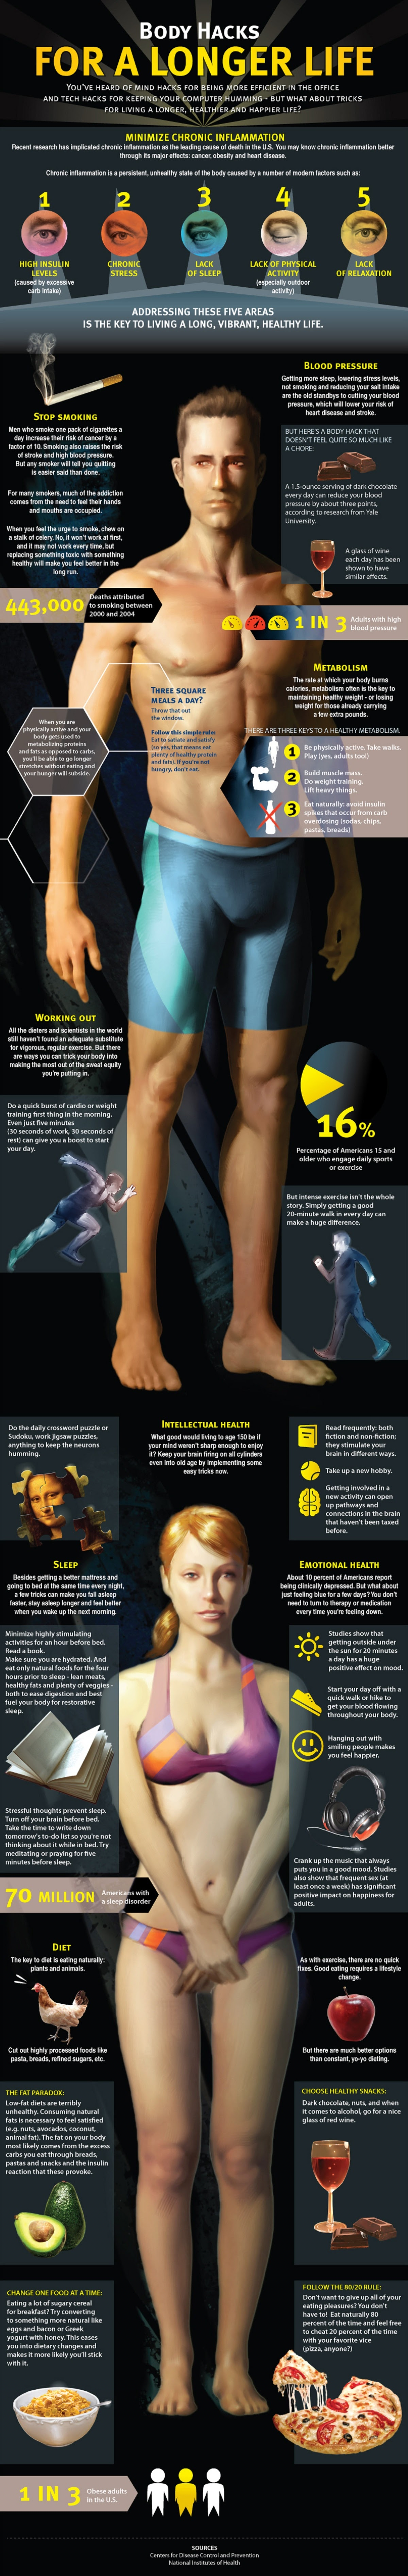 body-hacks-for-a-longer-life-infographic